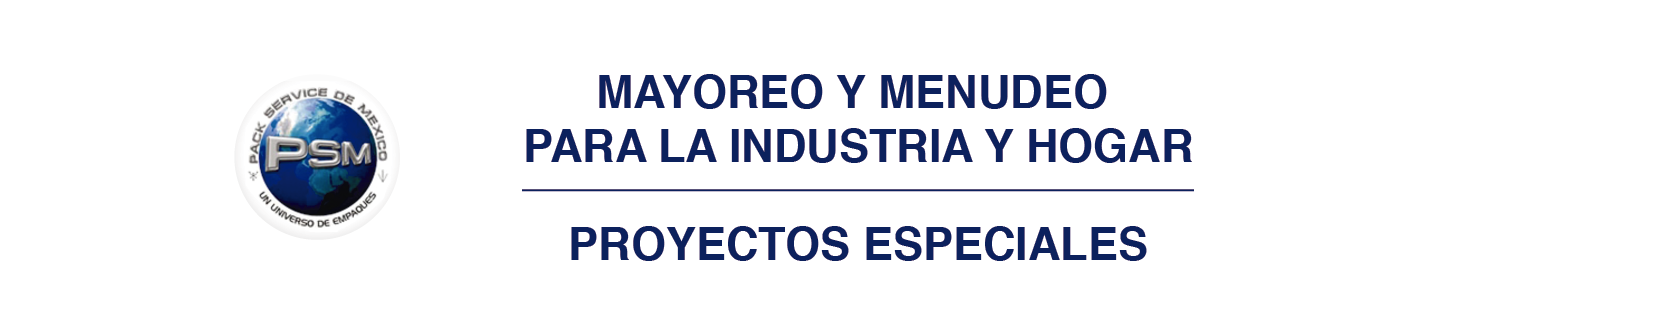 mayoreo menudeo y proyectos especiales.png